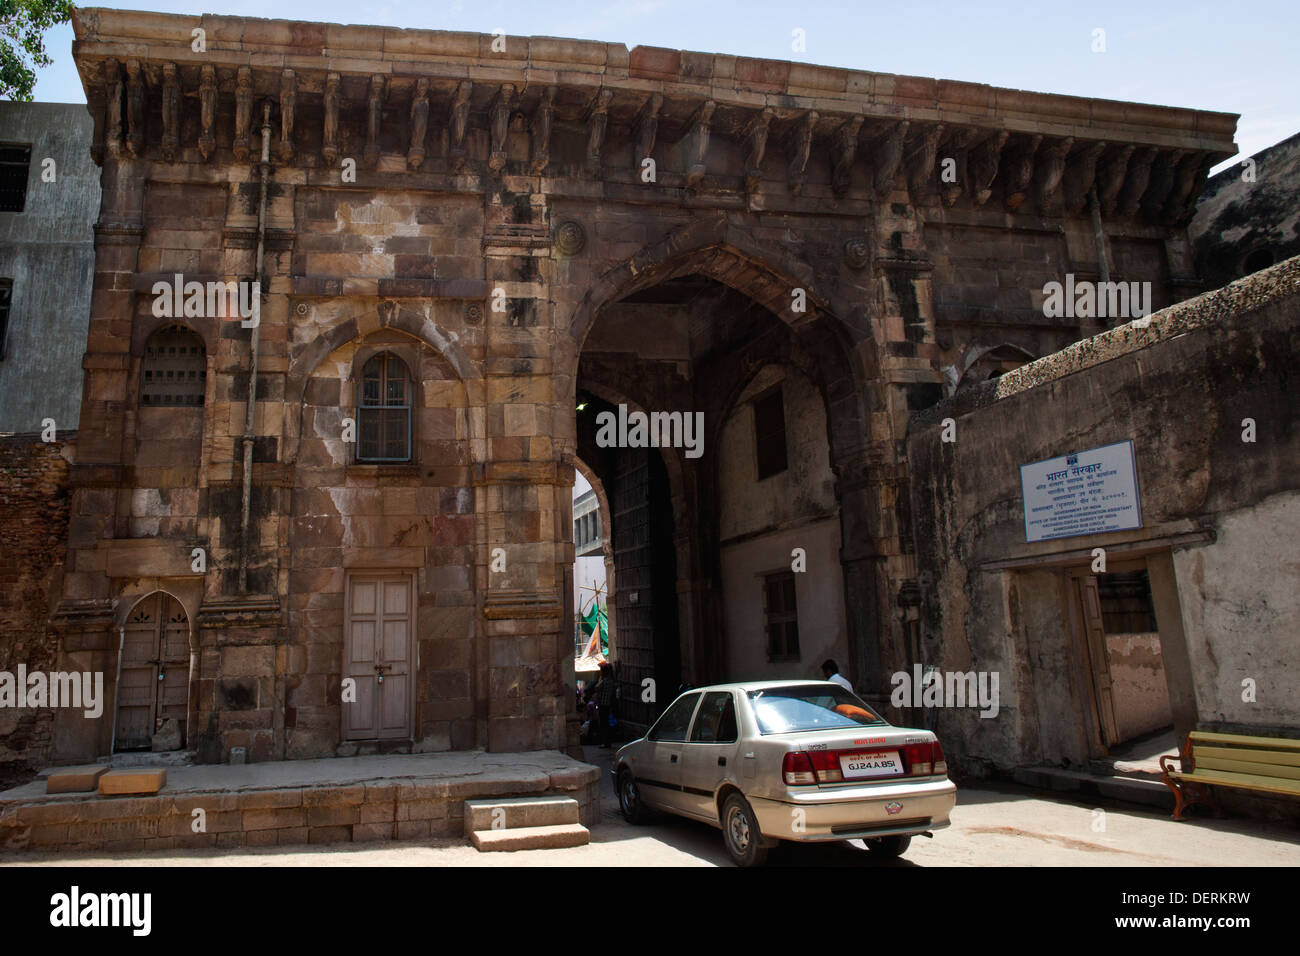 Entrance of the fort, Bhadra Fort, Ahmedabad, Gujarat, India - Stock Image